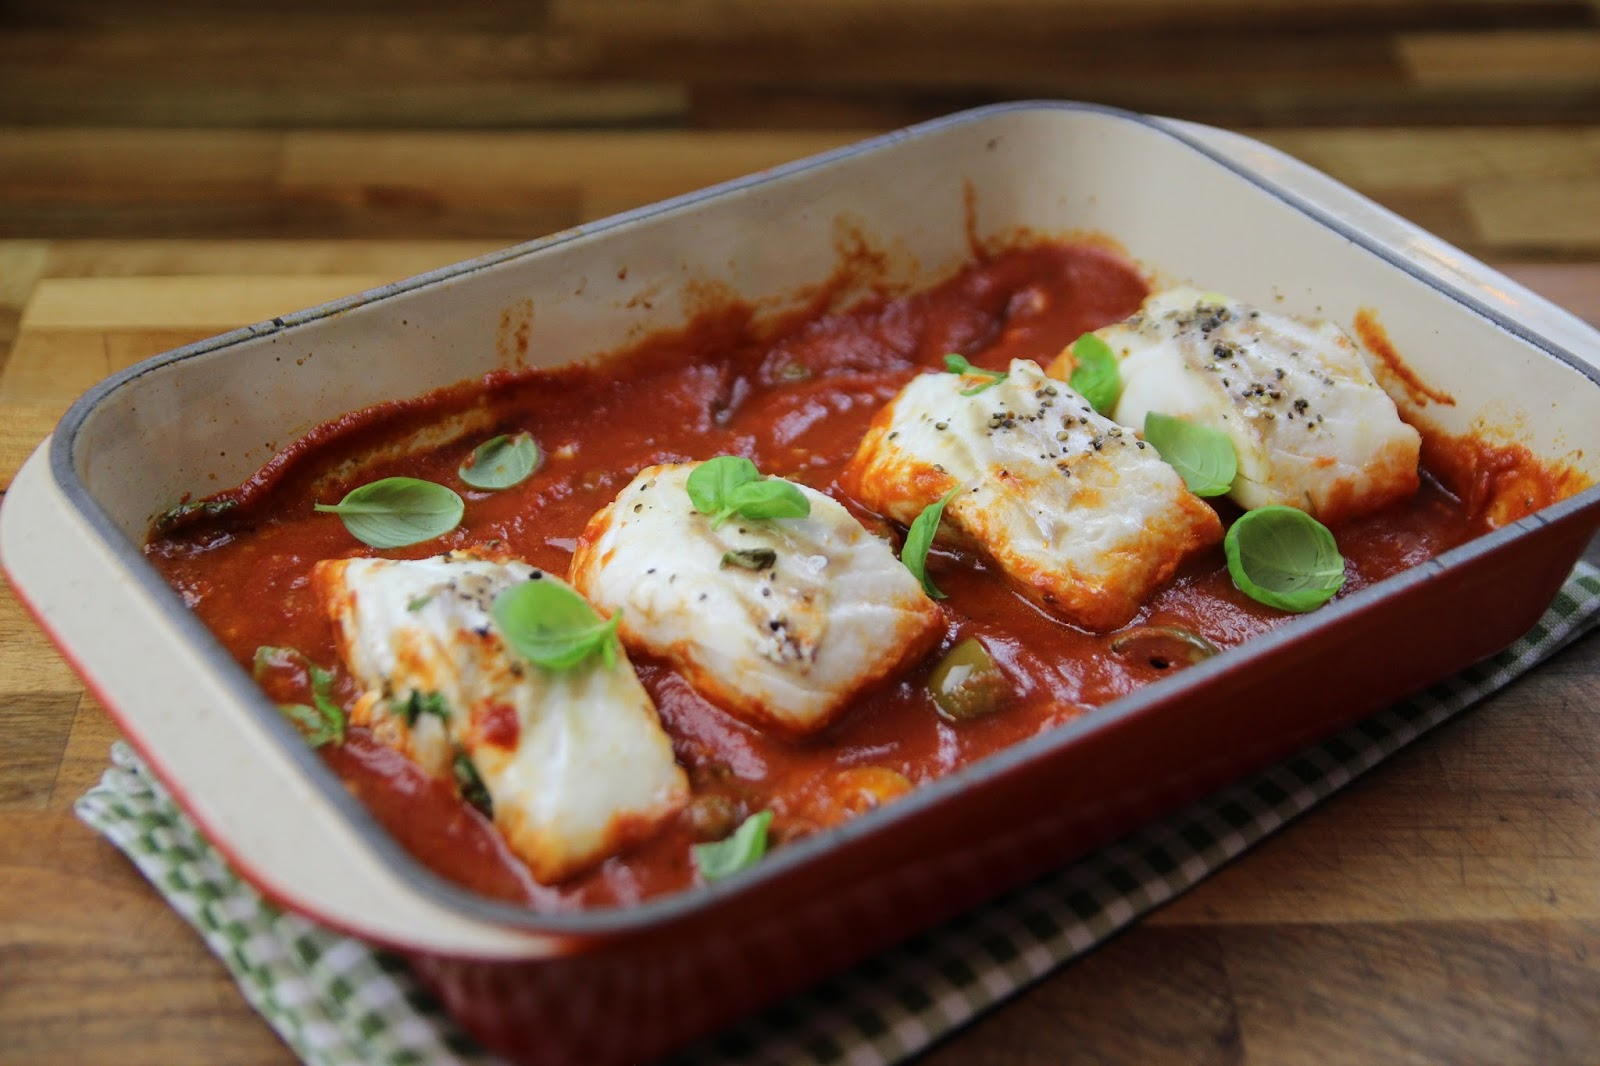 Baked Cod with Tomato and Olive Sauce